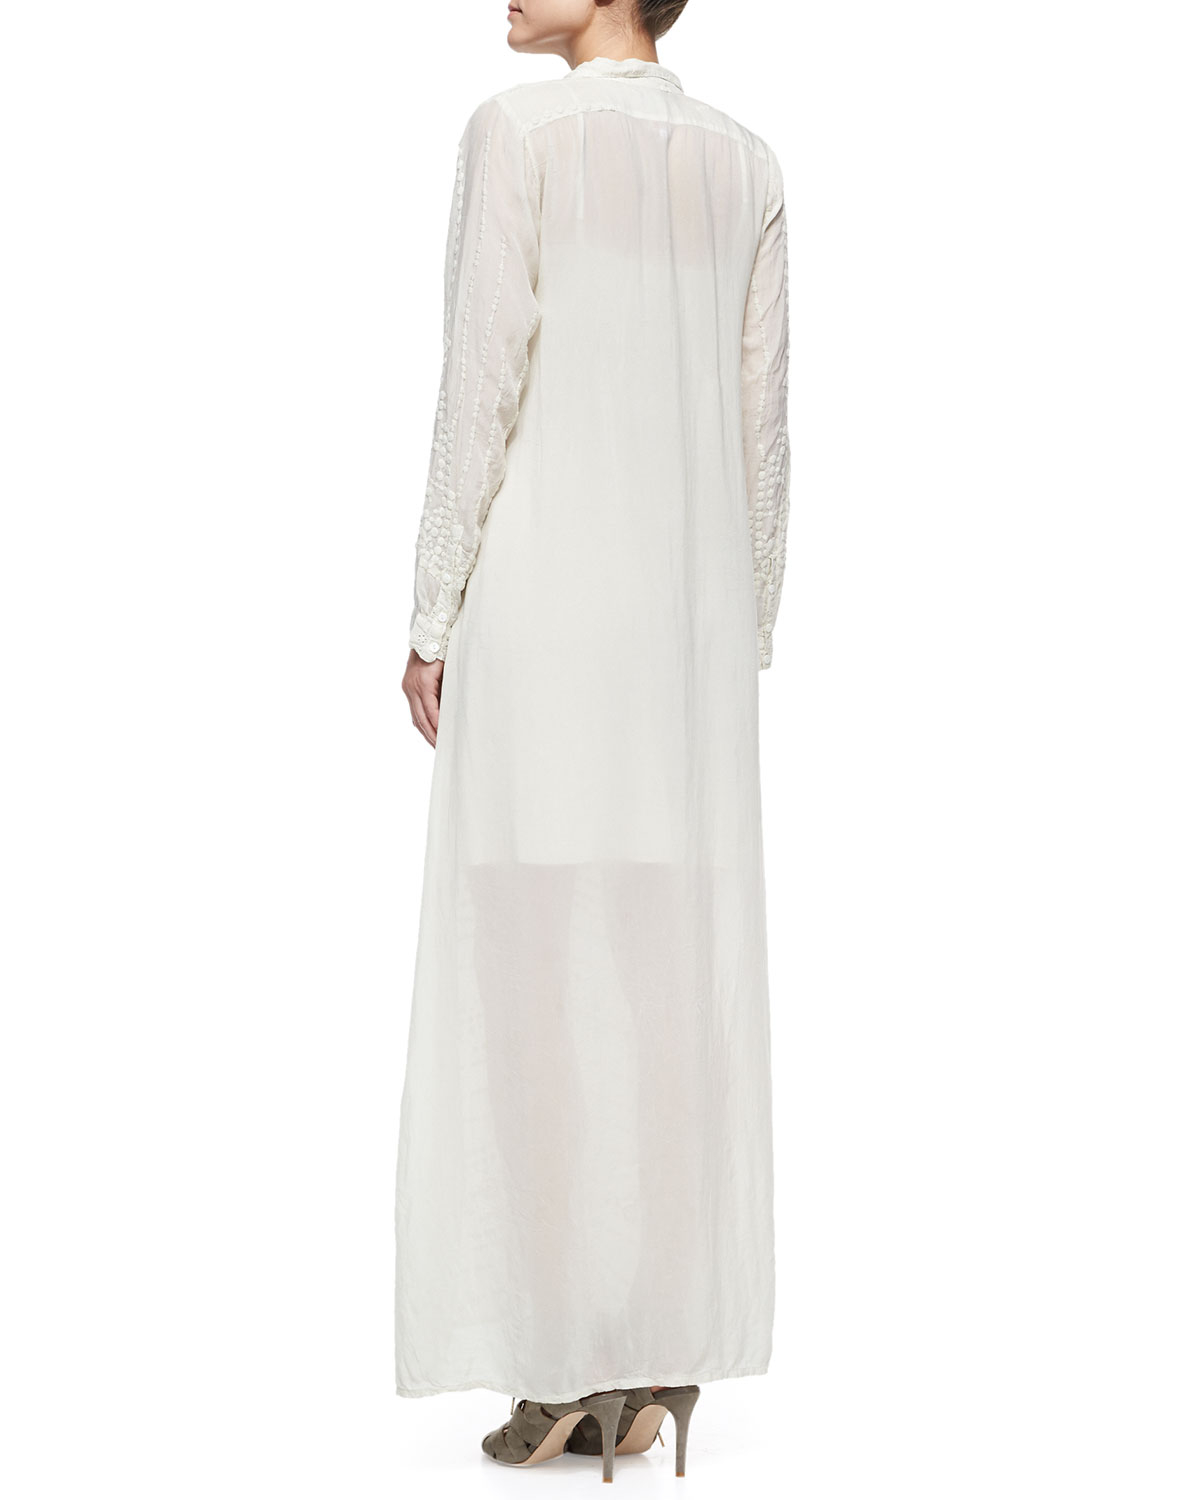 Lyst - Johnny Was Georgette Button-front Long Dress in White